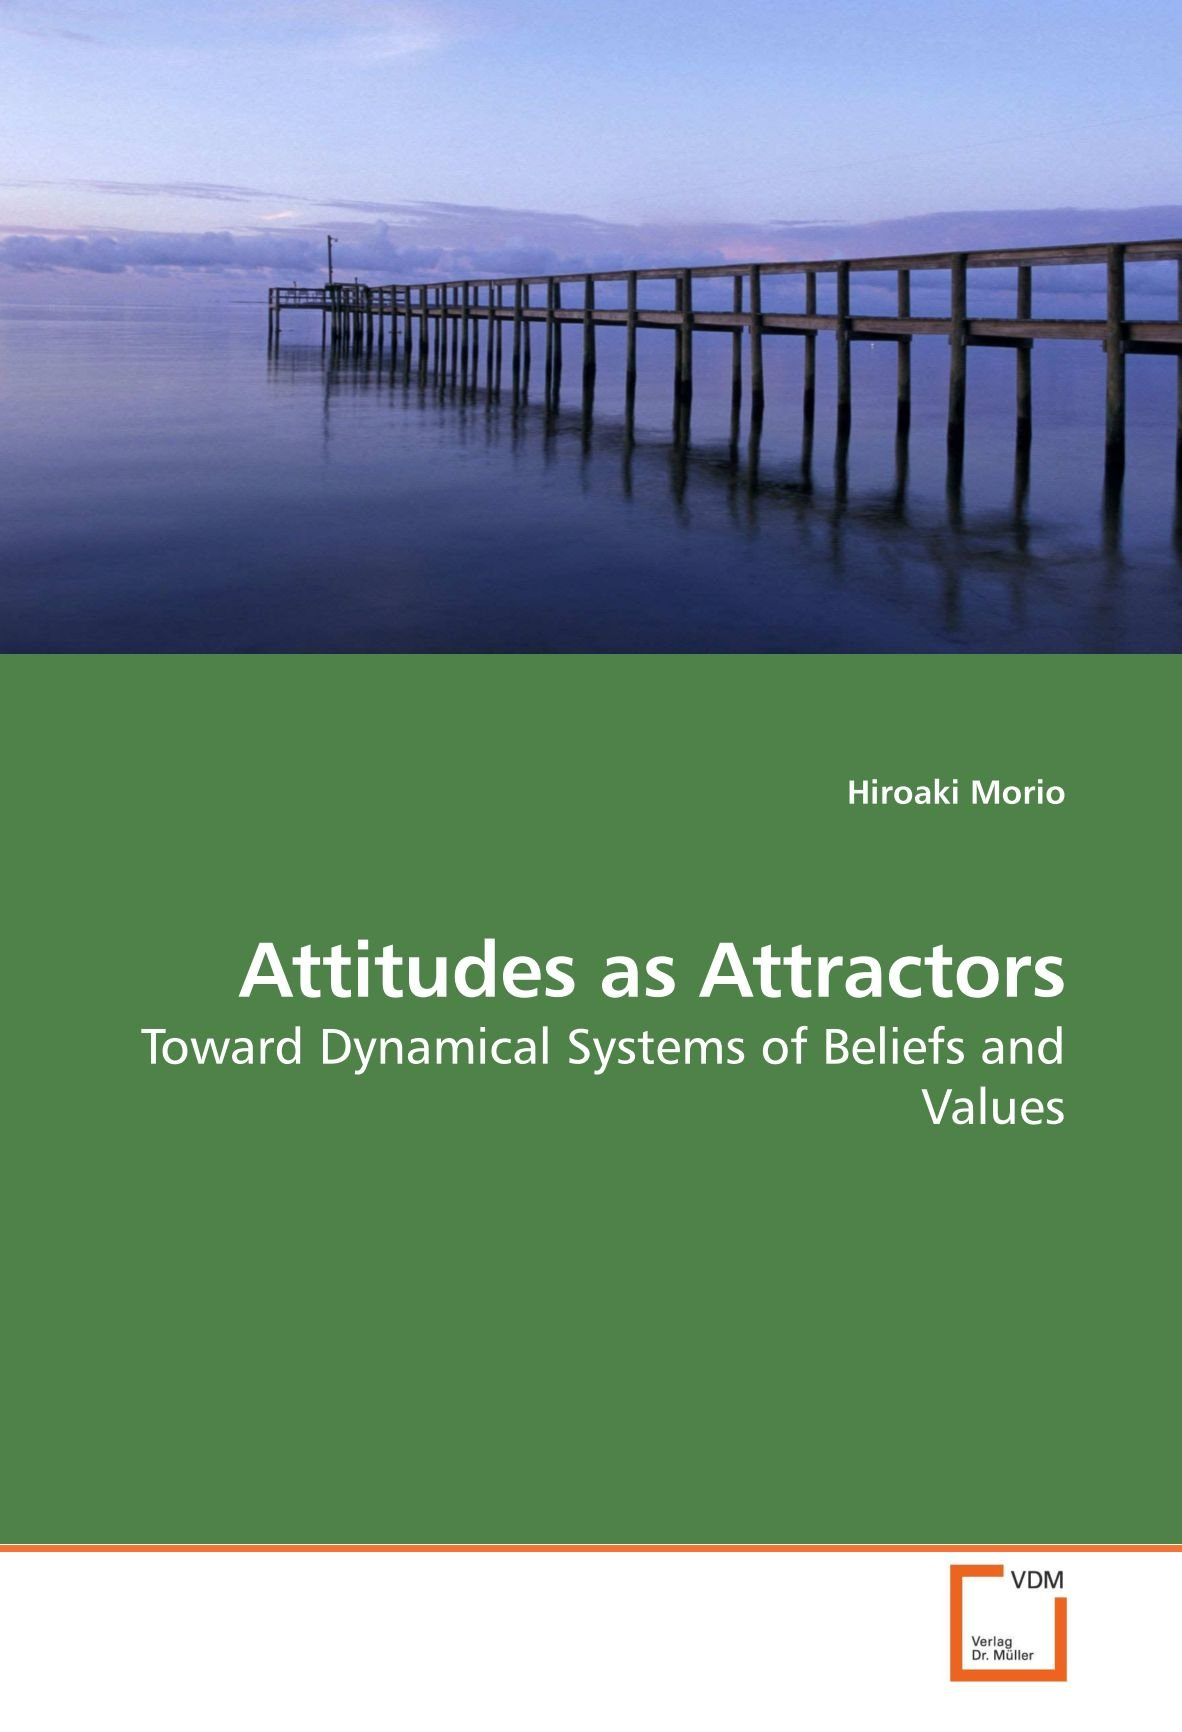 Download Attitudes as Attractors: Toward Dynamical Systems of Beliefs and Values PDF